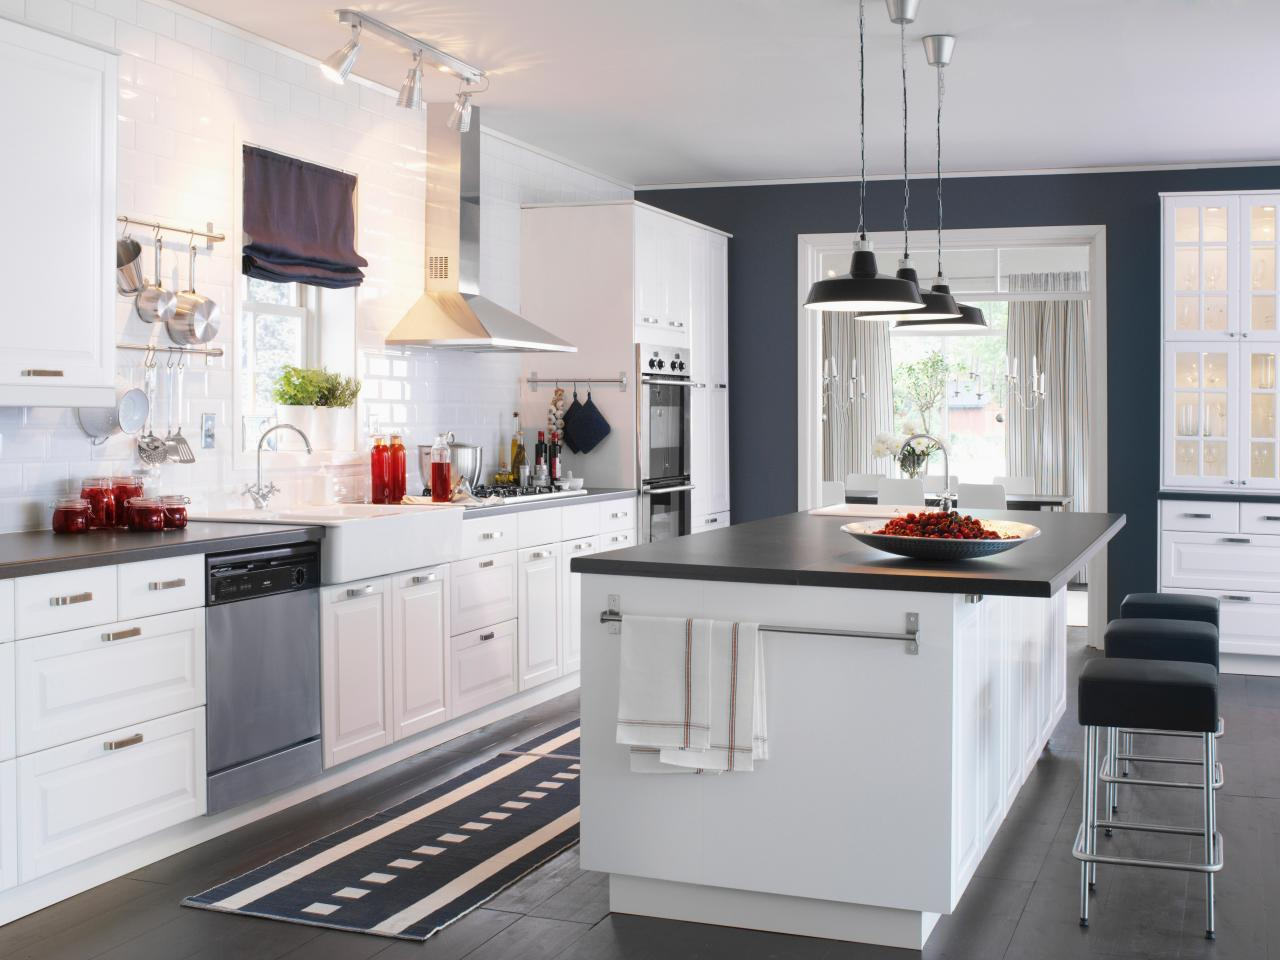 Ikea Hochstuhl Antilop Rückrufaktion ~  Kitchen Ideas & Design with Cabinets, Islands, Backsplashes  HGTV